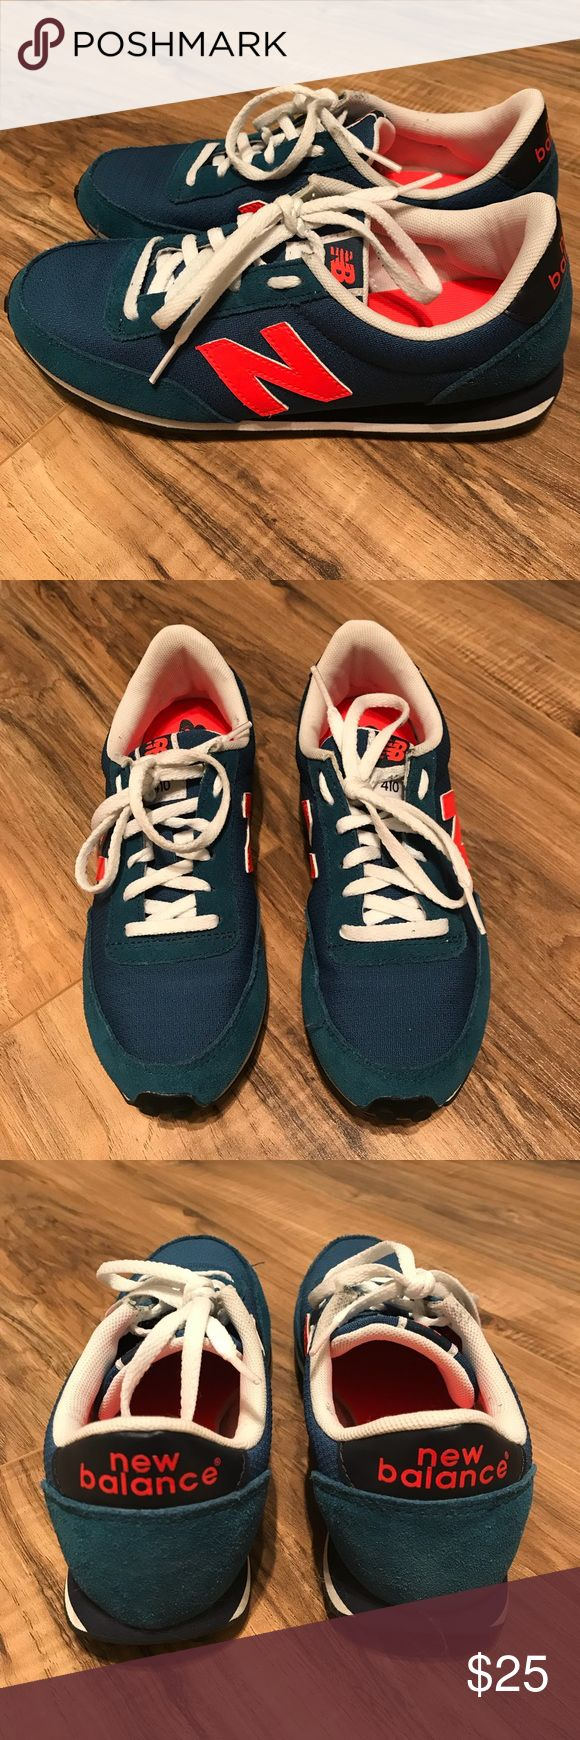 New Balance 410 gym shoes Used and good condition originally paid $60. Size 7 New Balance Shoes Sneakers